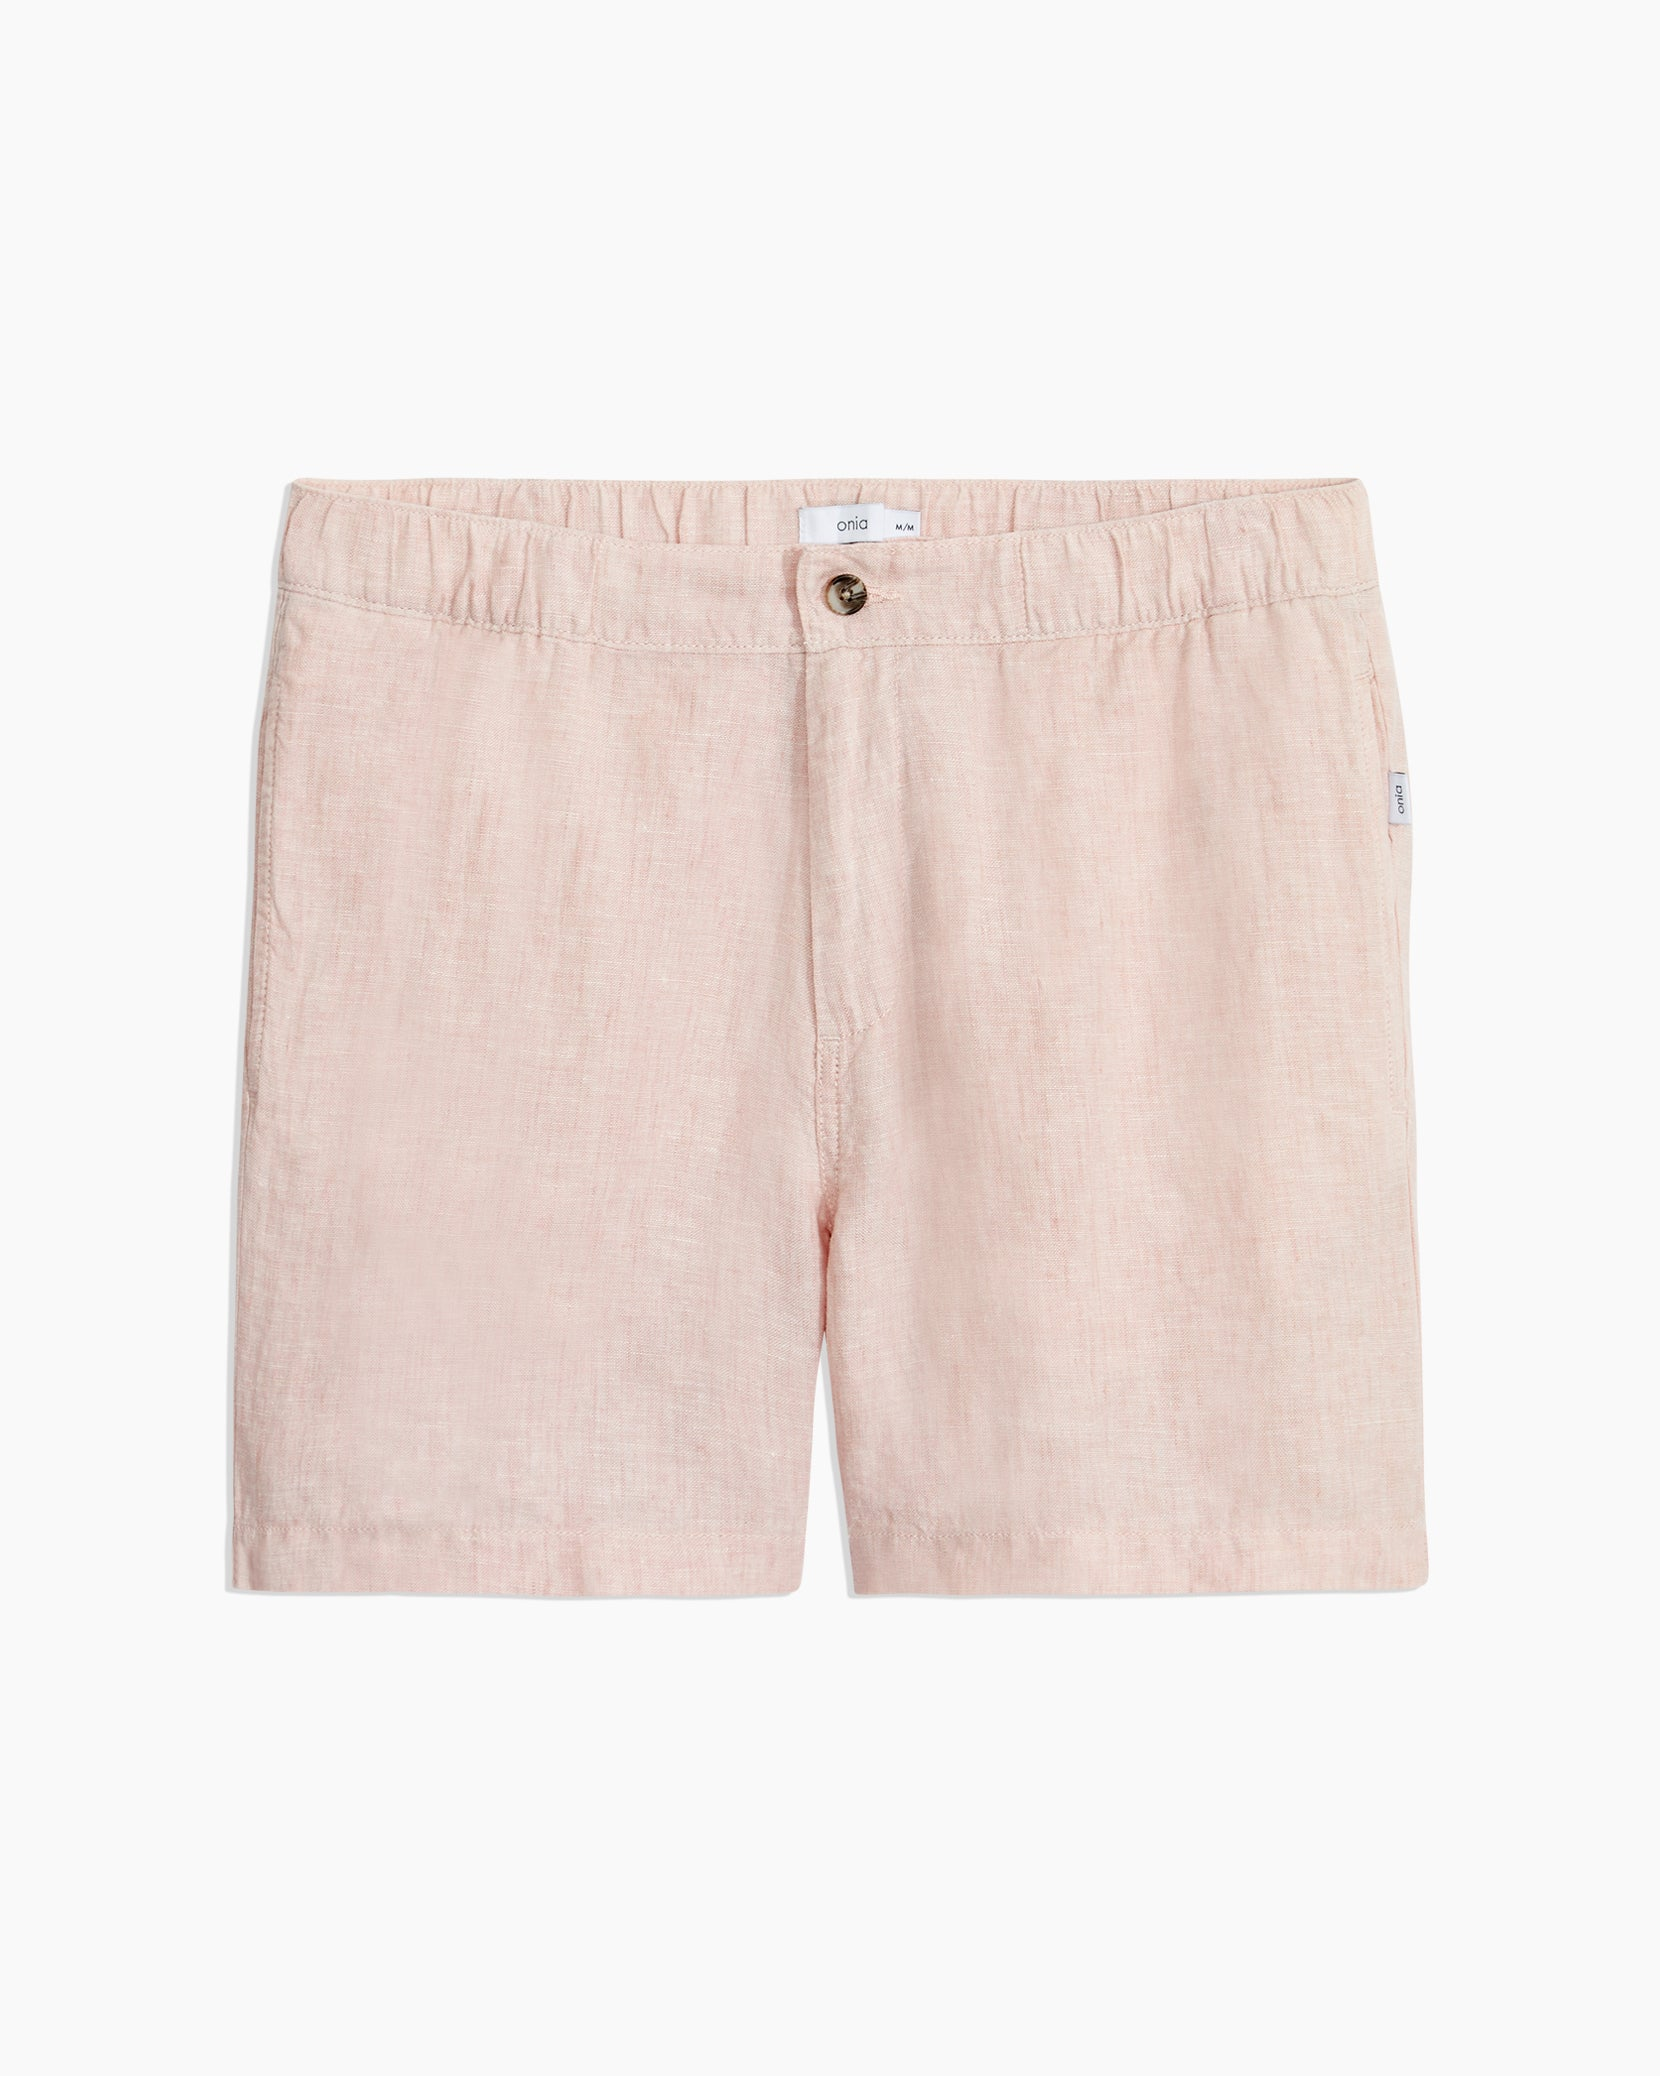 Moe Linen Shorts in Evening Sand - 1 - Onia